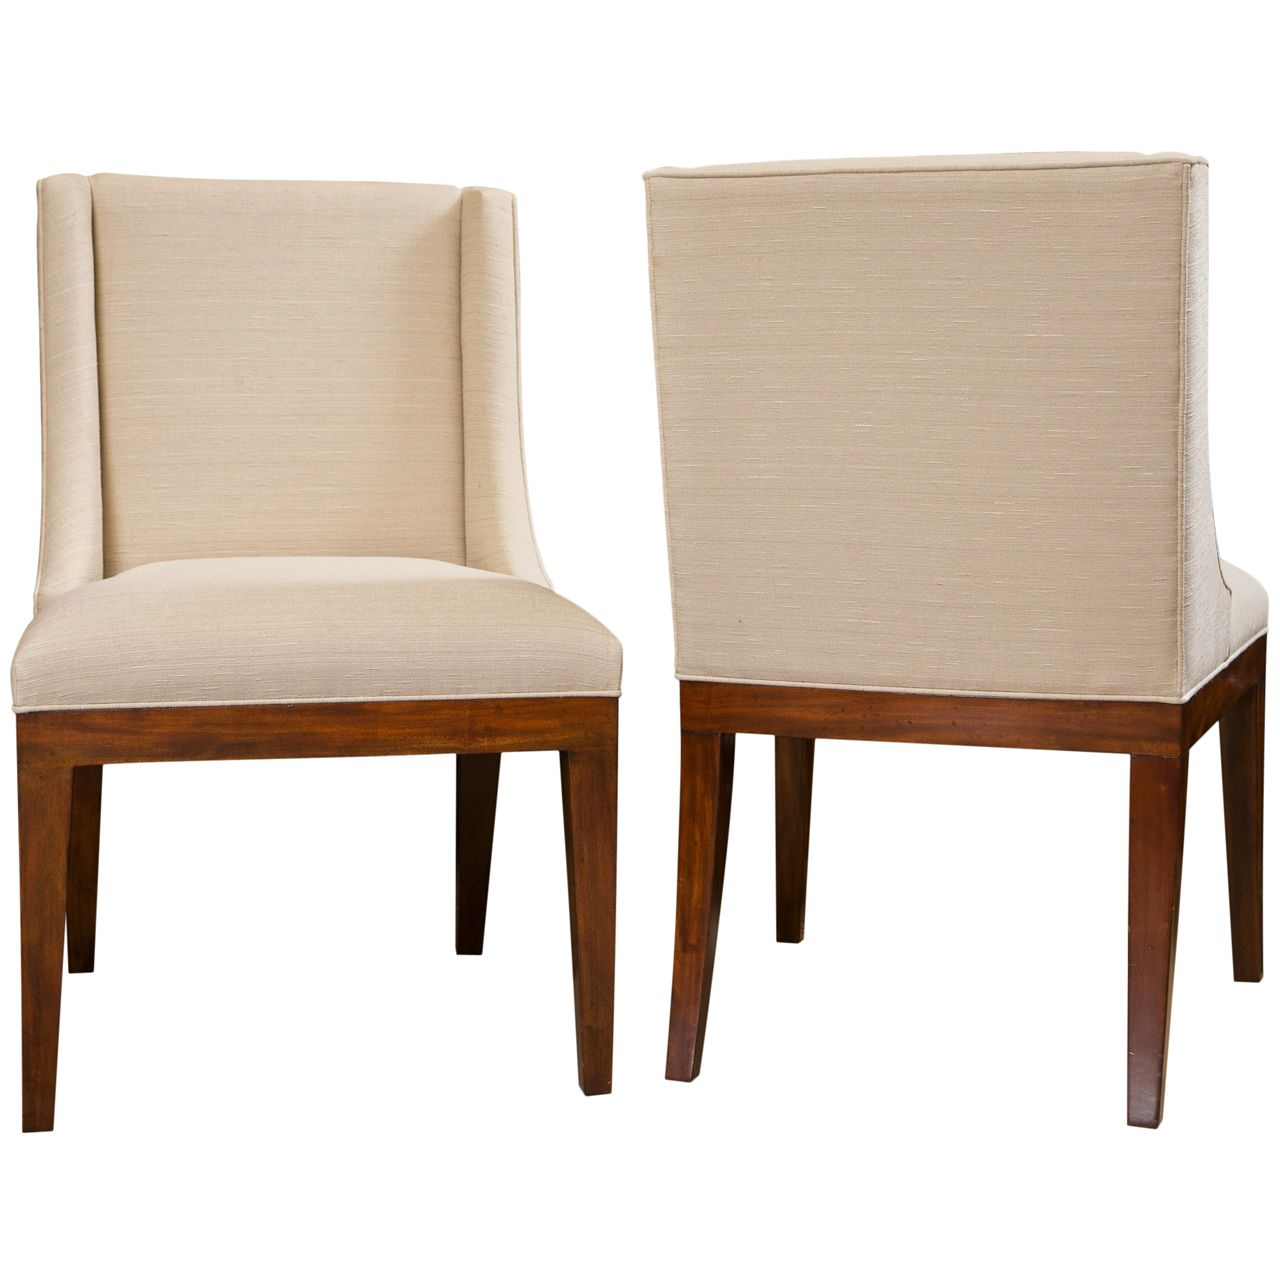 Fair Upholstered Dining Chairs Australia